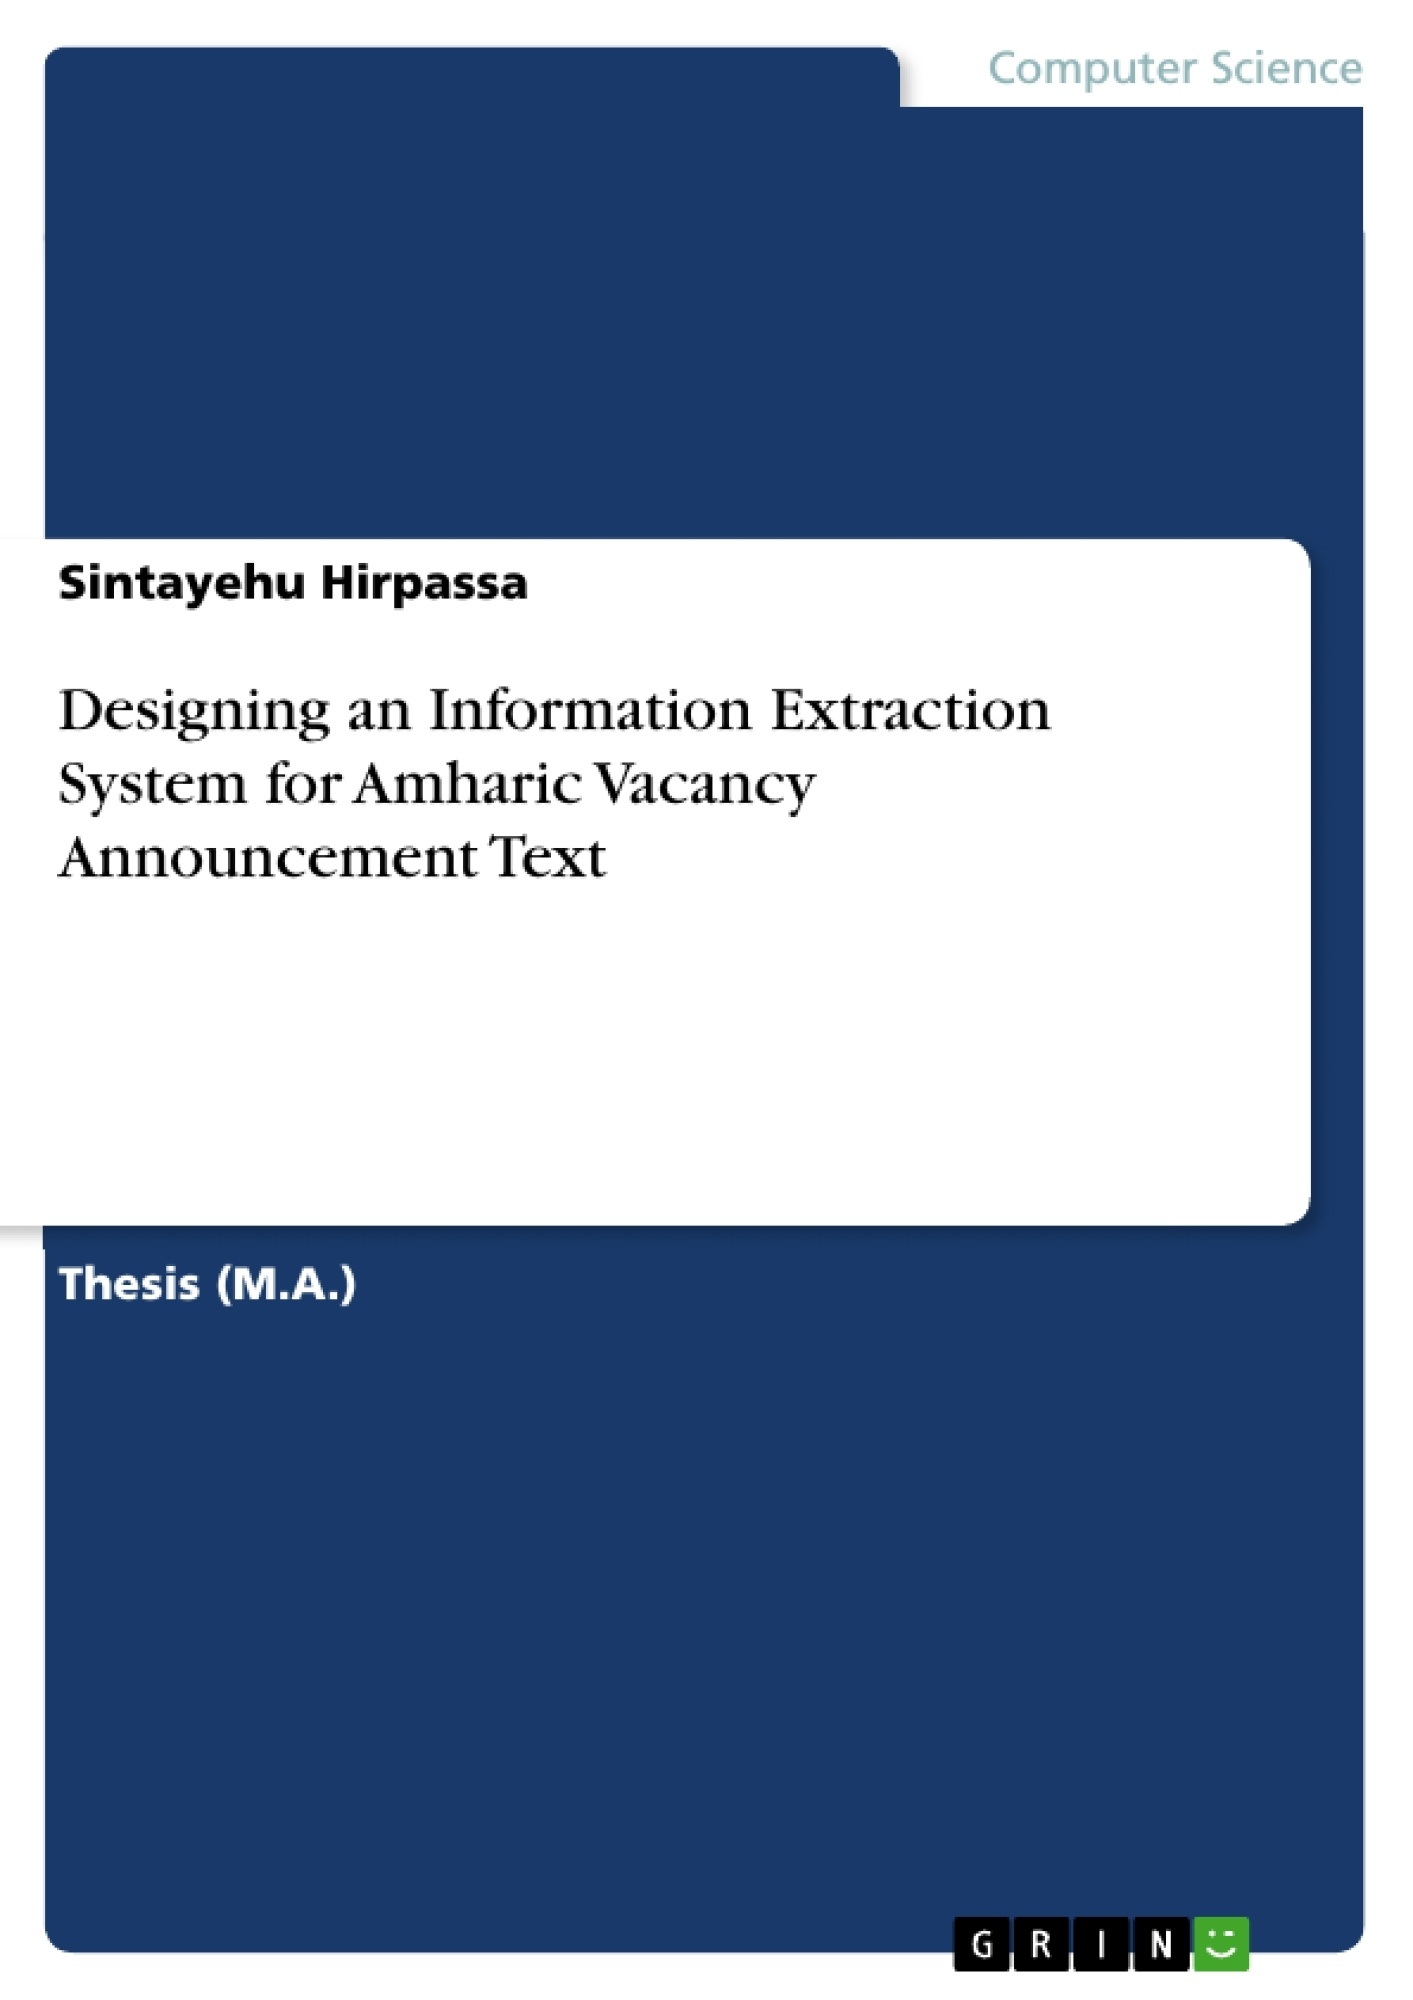 GRIN - Designing an Information Extraction System for Amharic Vacancy  Announcement Text